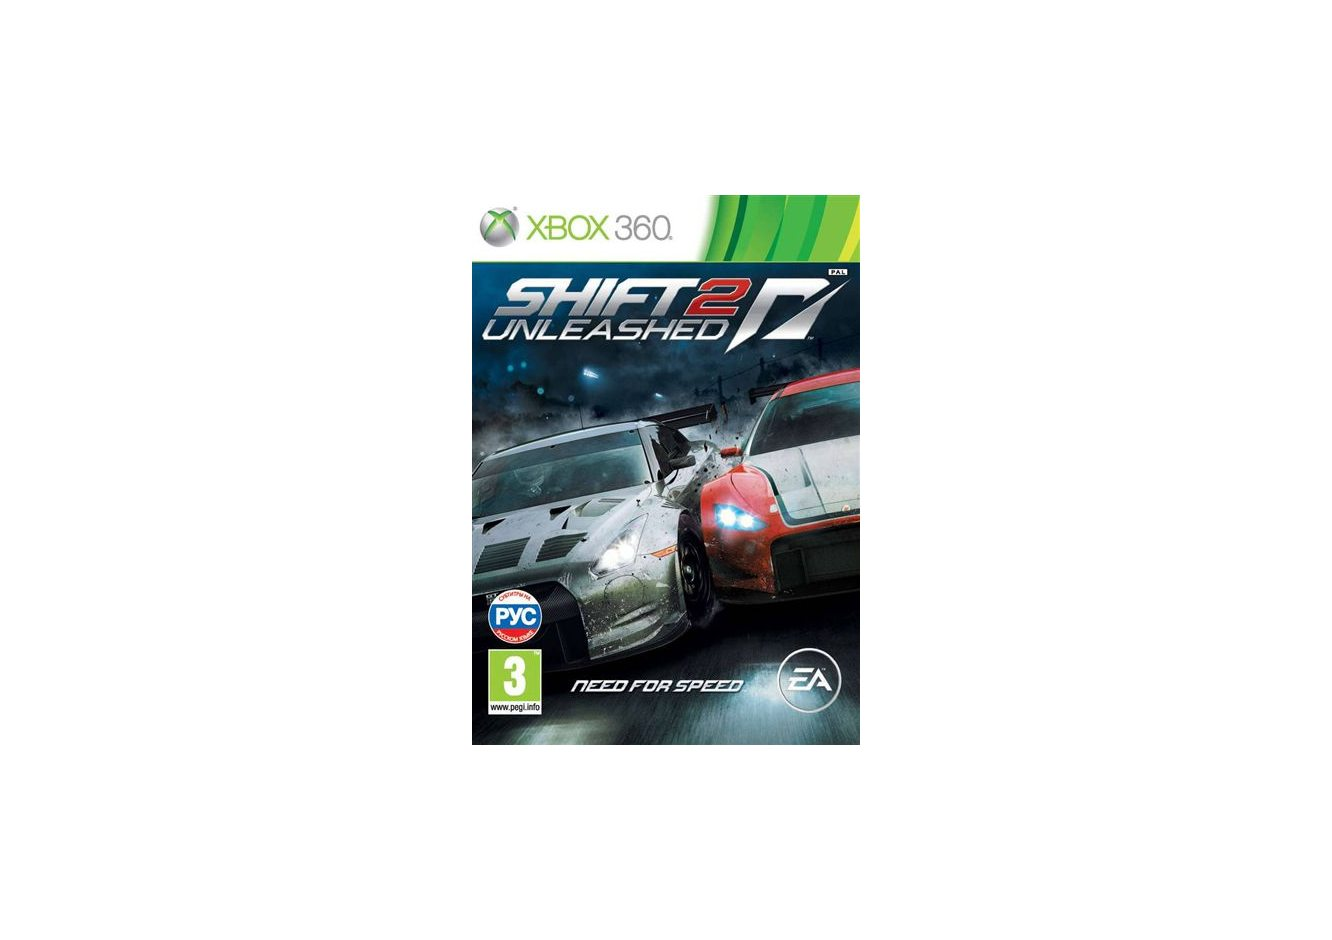 Xbox 360 Need for Speed: Shift 2 Unleashed Xbox 360